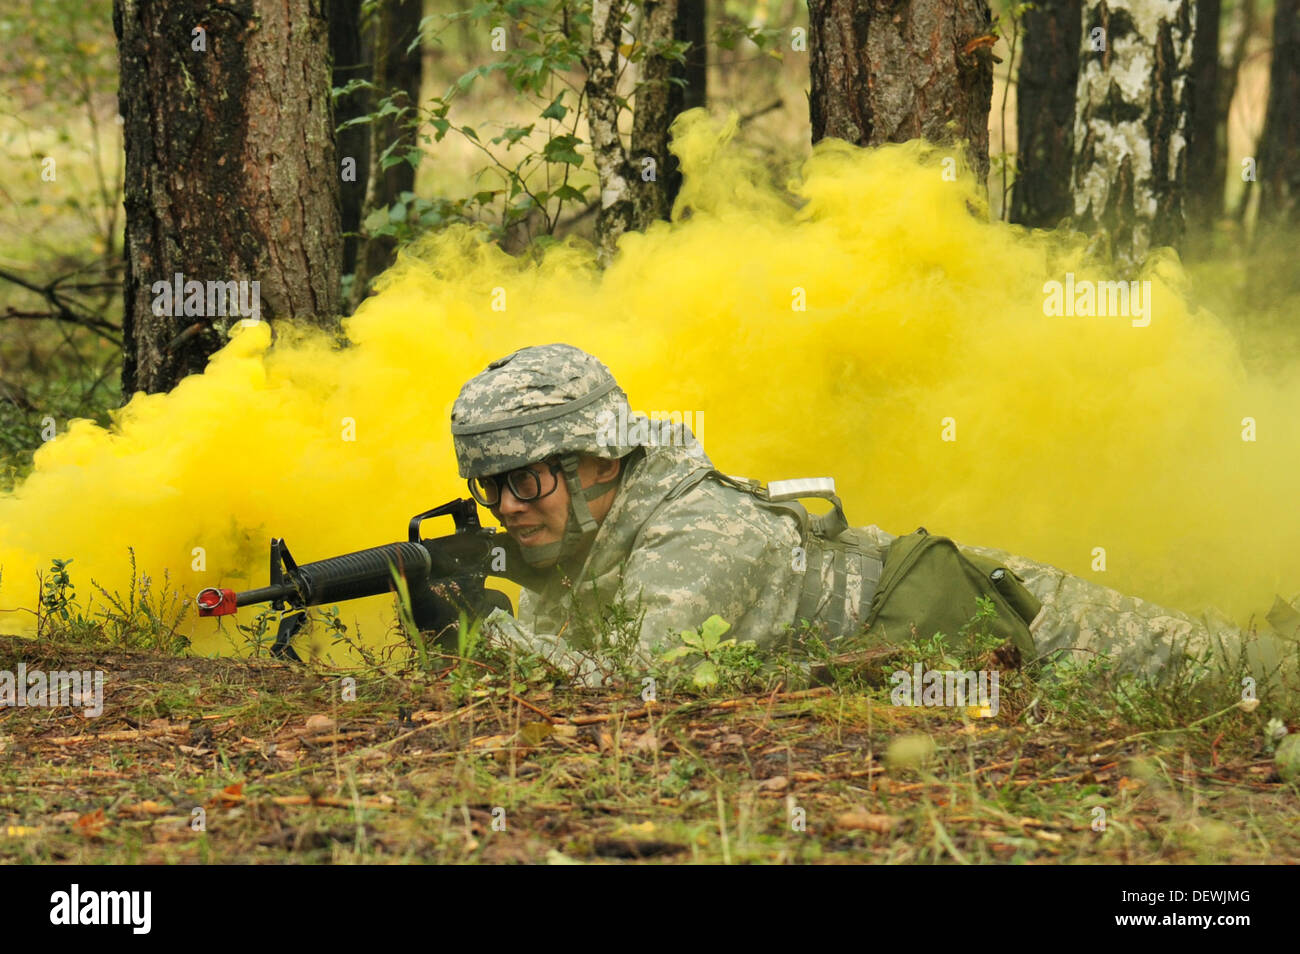 U.S. Army 2nd Lt. Chunjiang Liao utilizes smoke for concealment before crossing a road during the U.S. Army Europe Expert Field - Stock Image